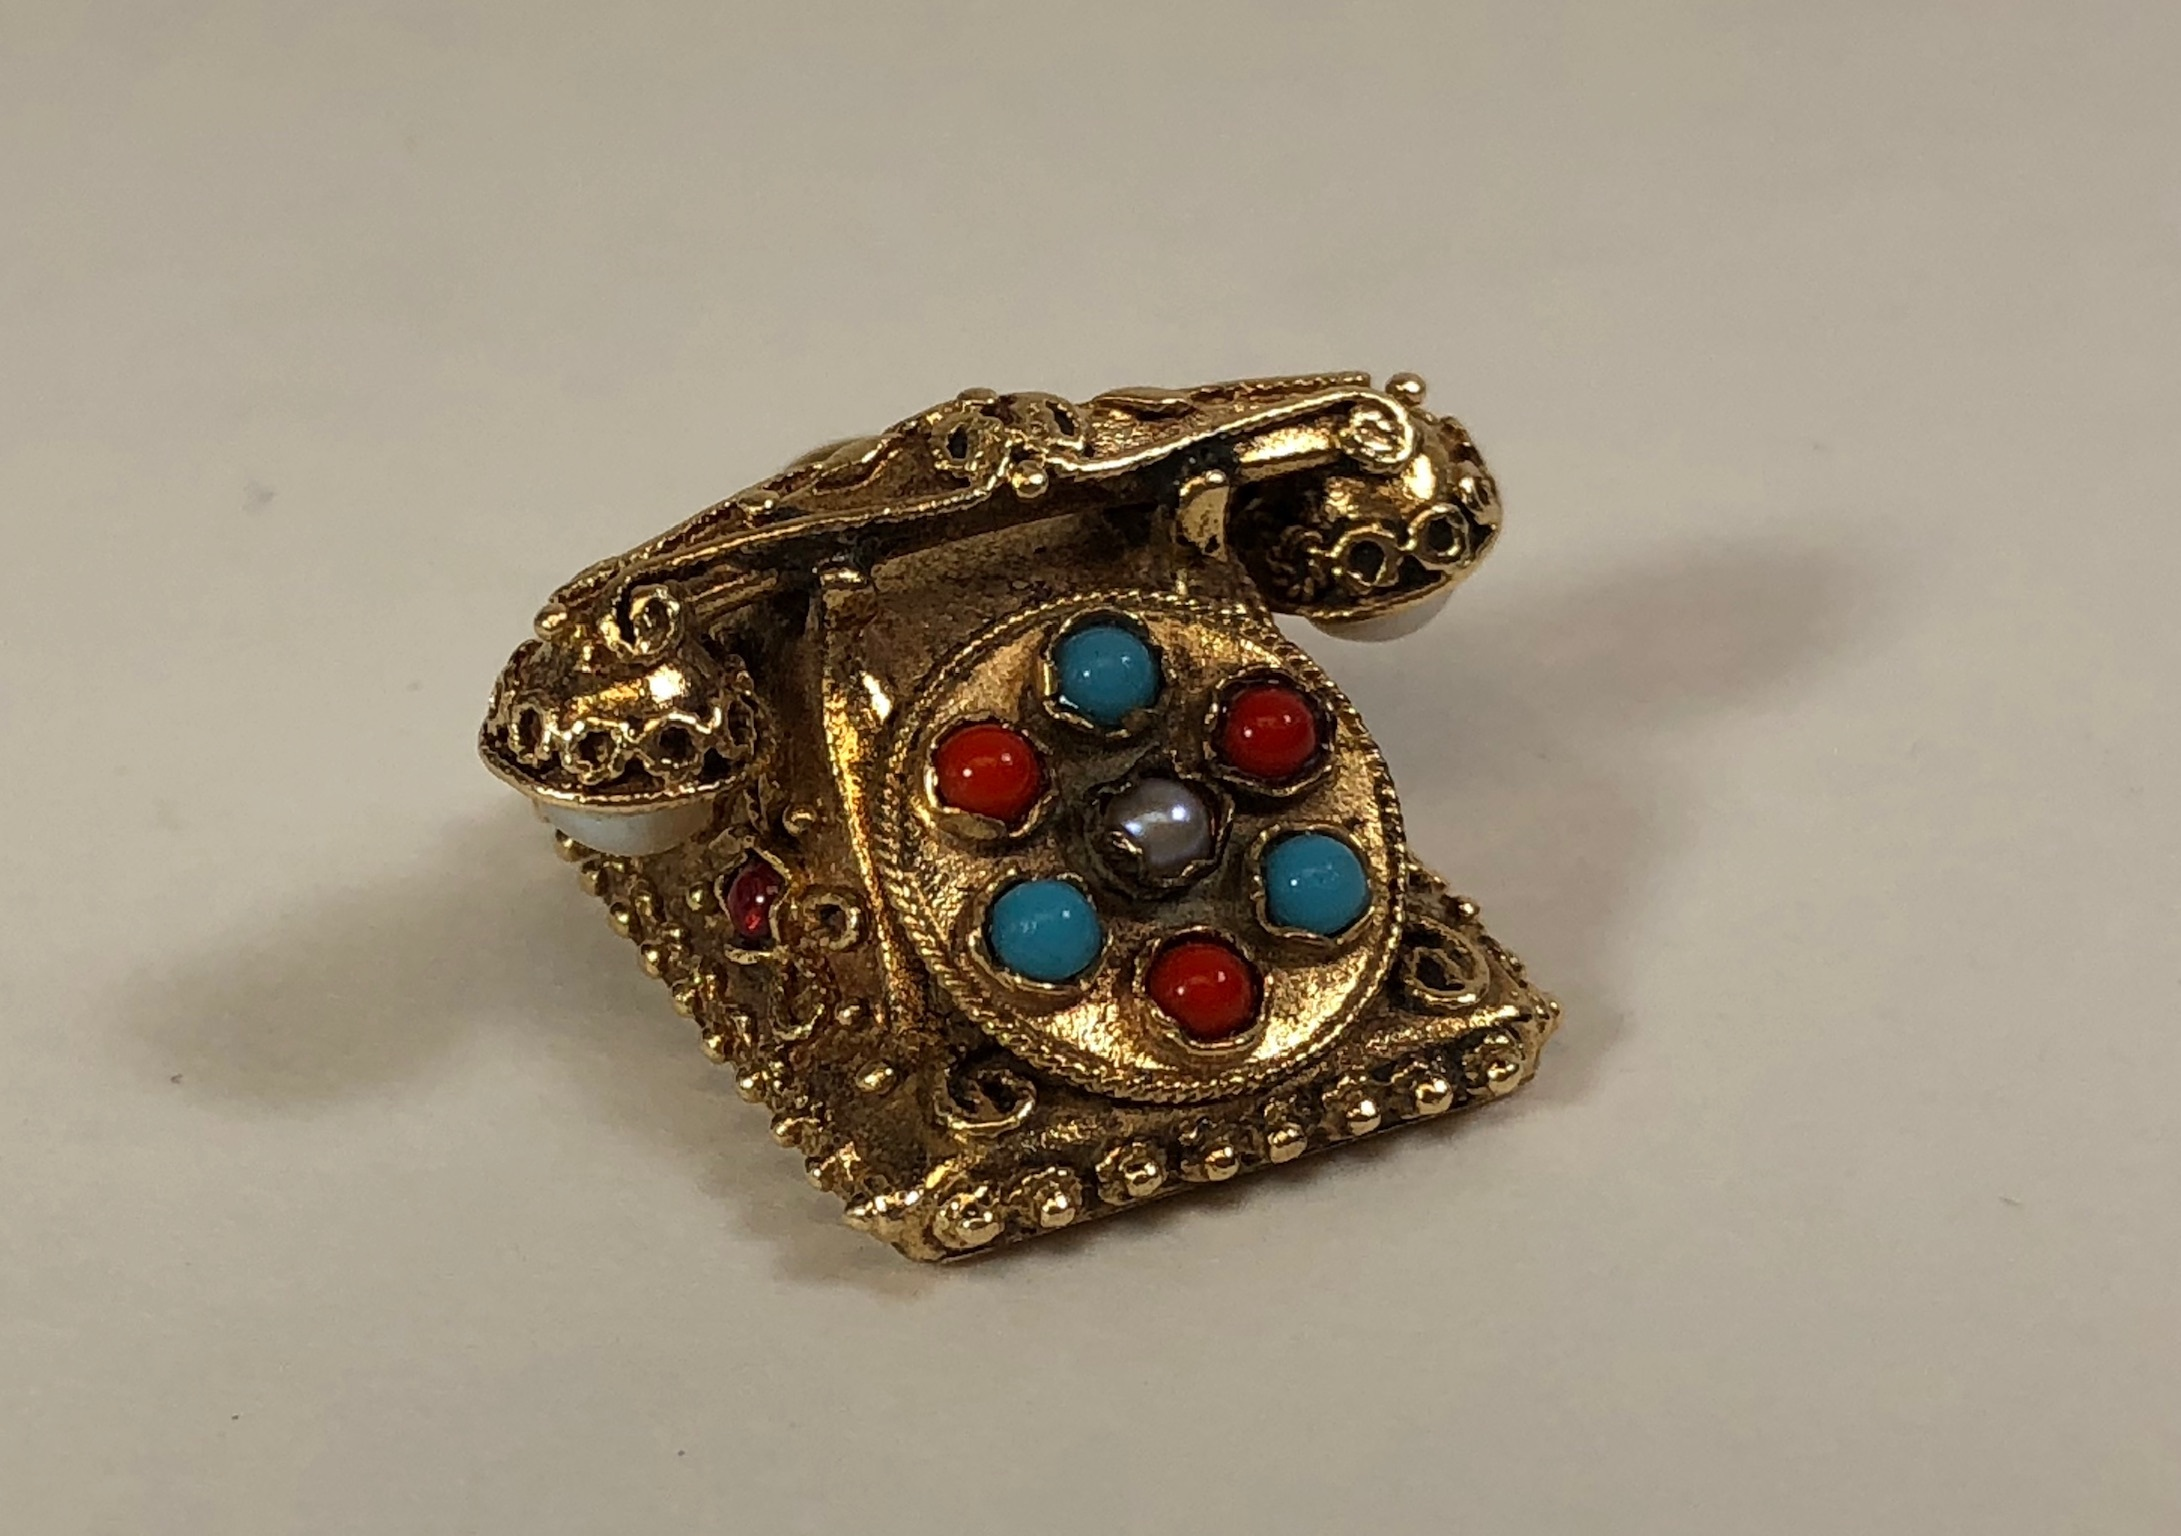 Vintage Rotary Phone 14K Gold Victorian Etruscan Revival Bejeweled 3D Charm